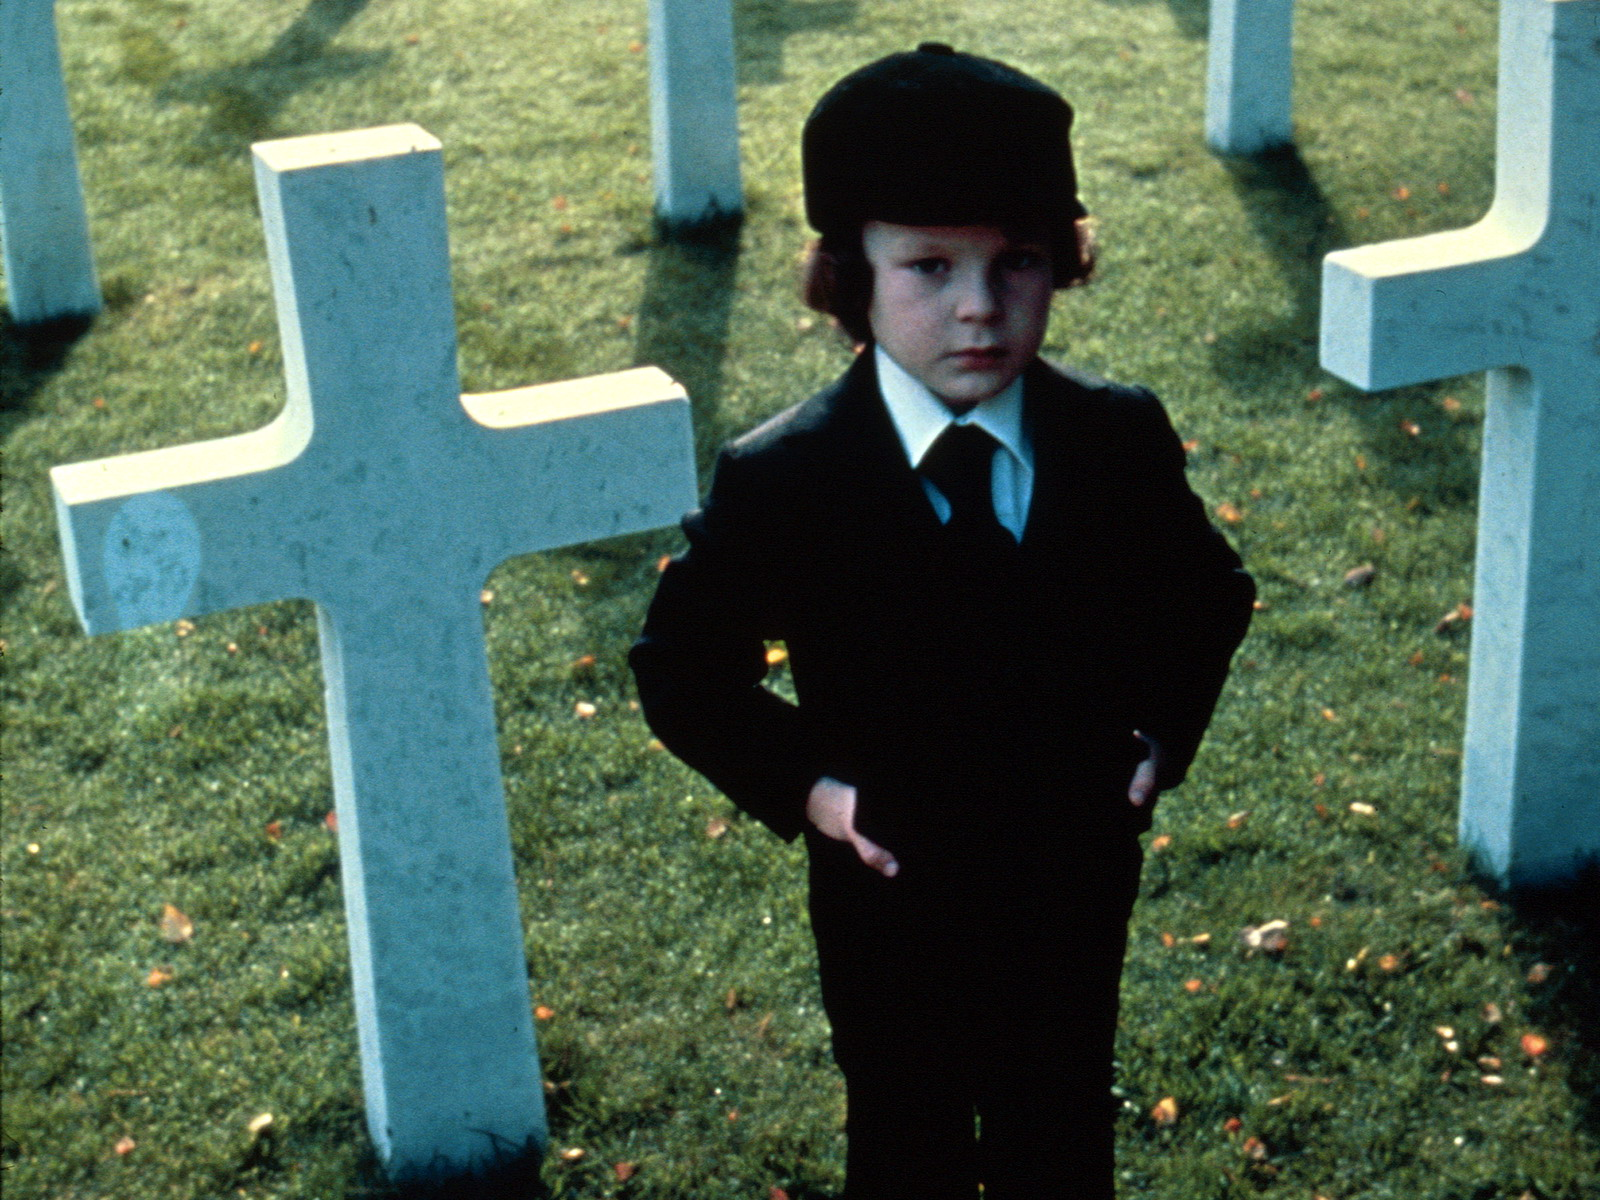 19958_omen_or_the-omen_1600x1200_(www.GdeFon.ru).jpg